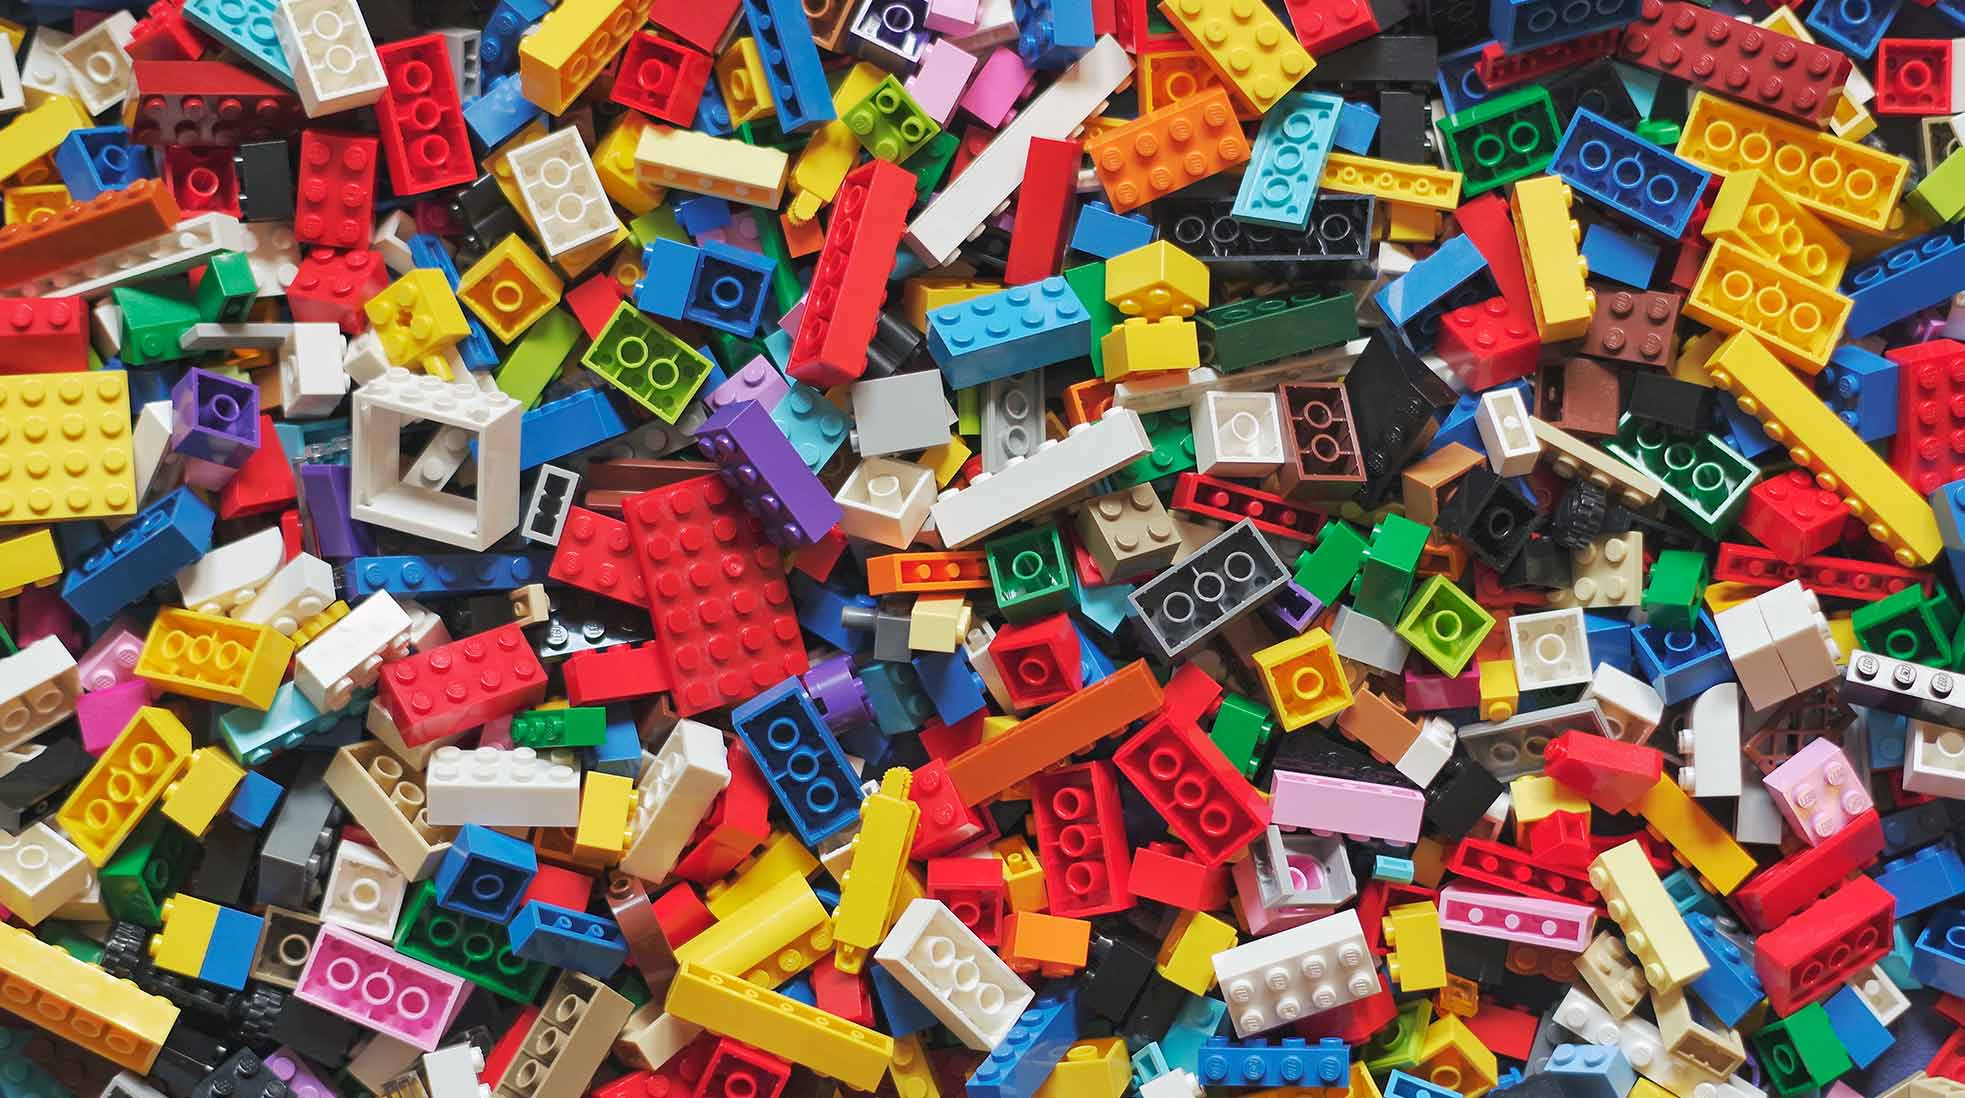 A huge pile of Lego bricks in different colors